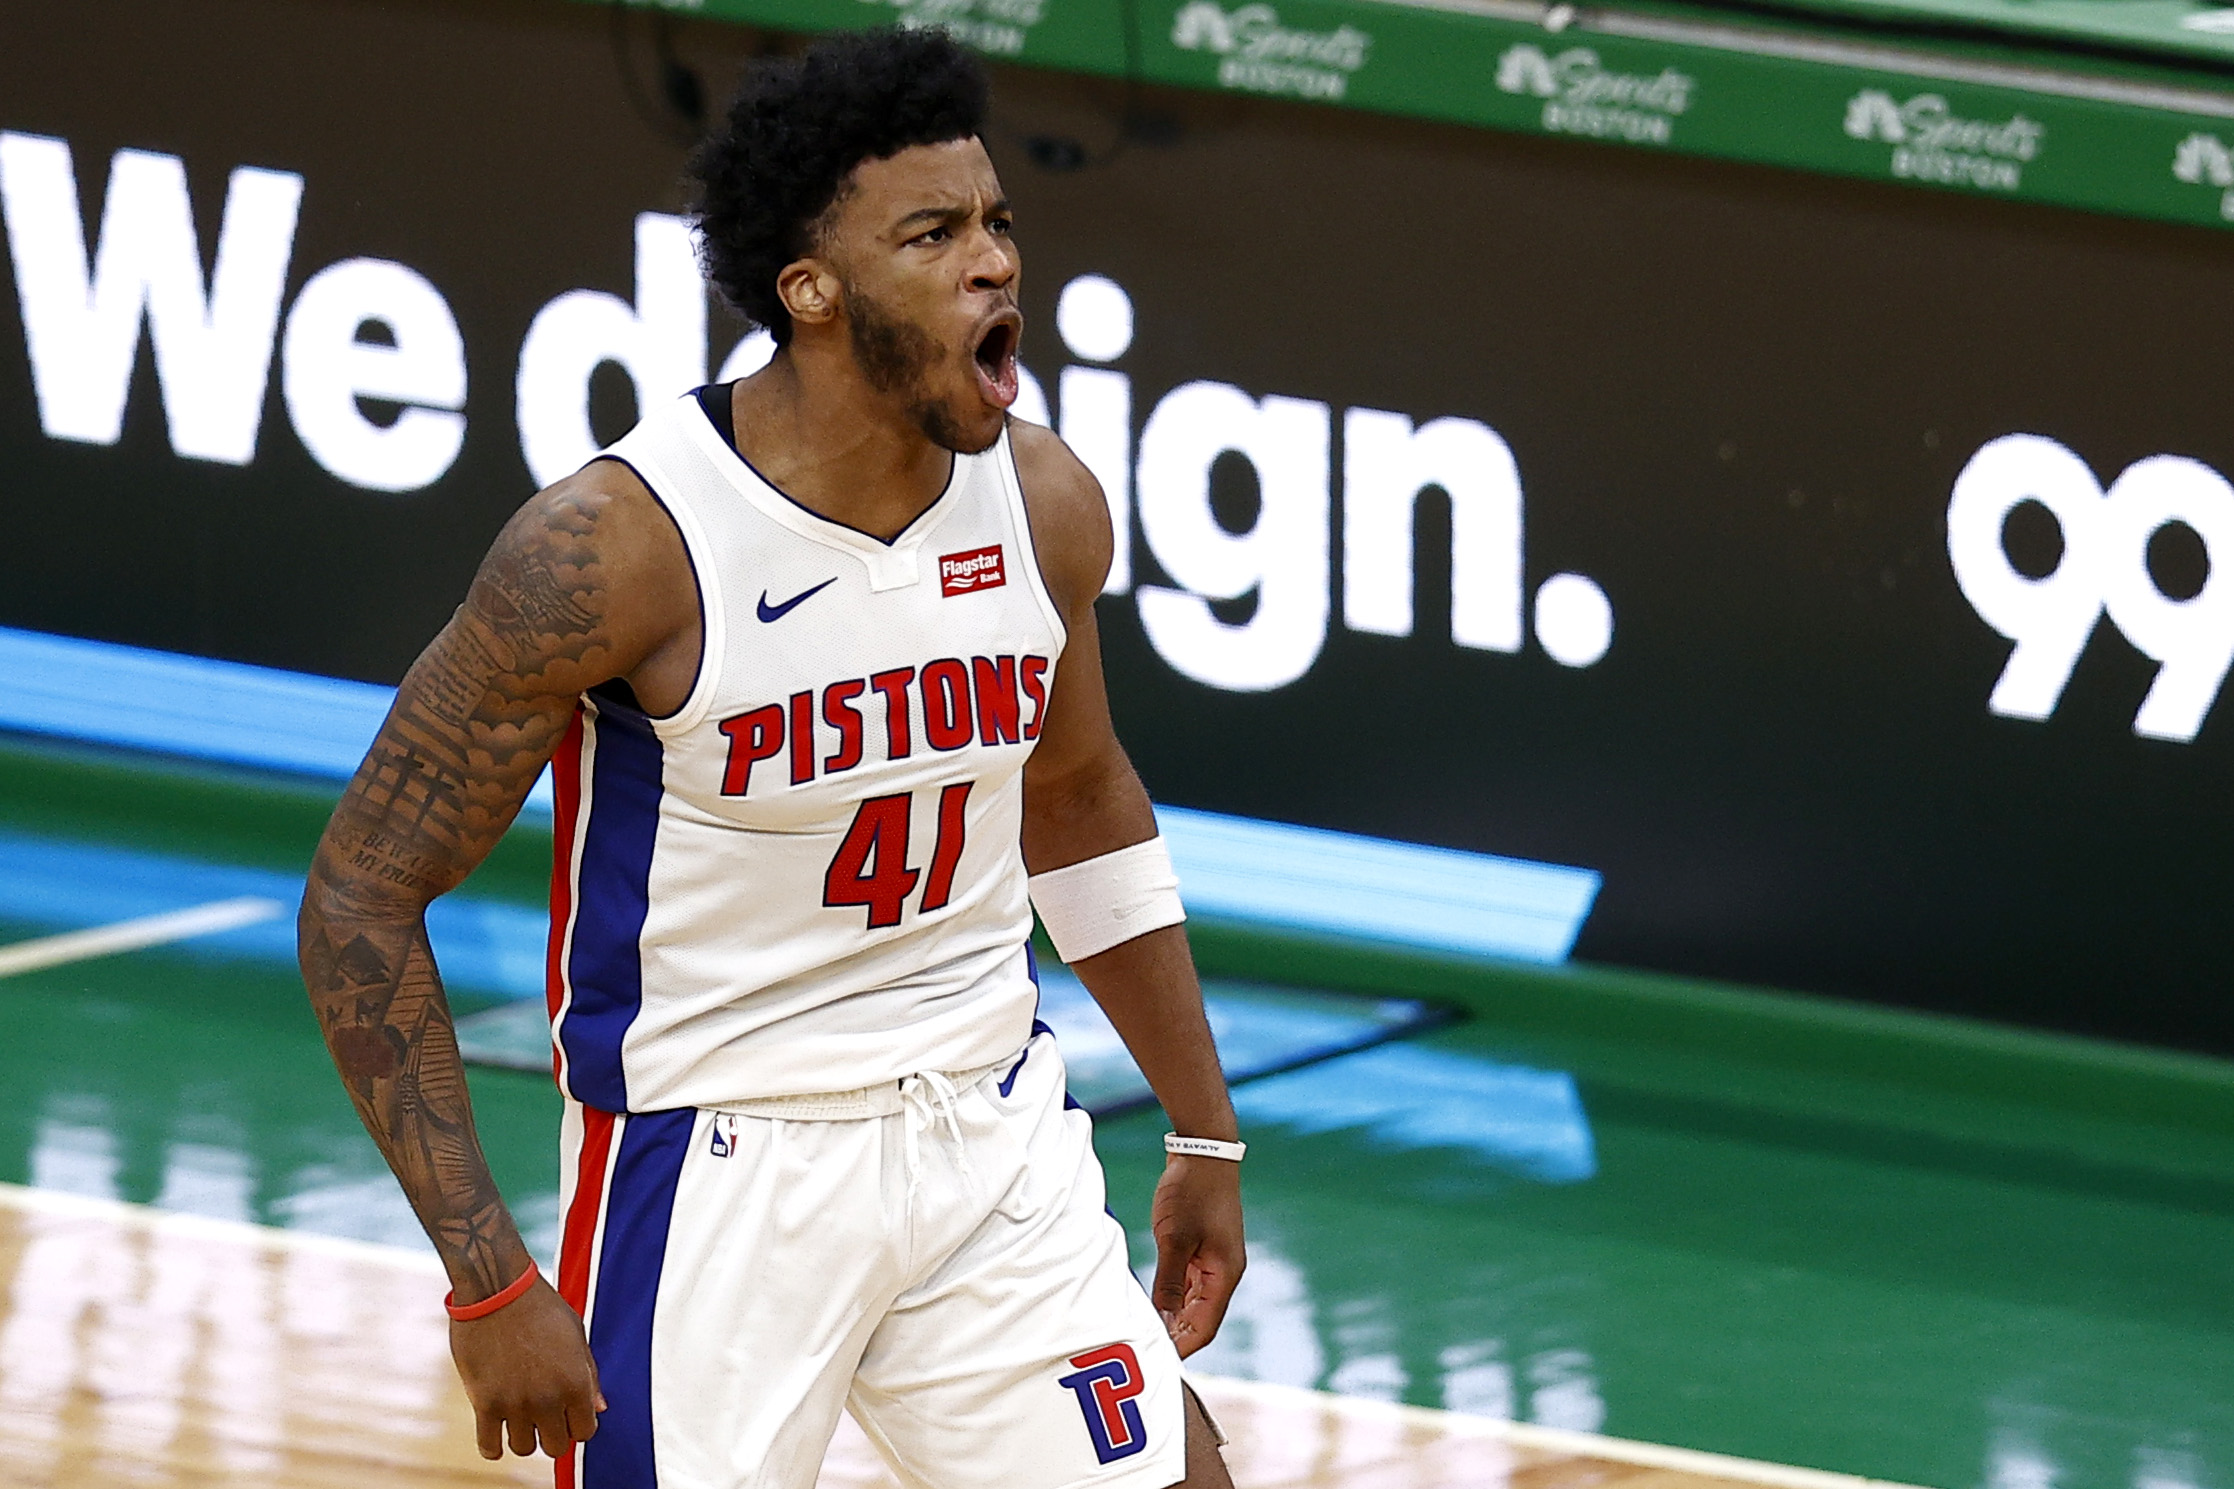 Saddiq Bey #41 of the Detroit Pistons celebrates after scoring against the Boston Celtics during the fourth quarter of the Pistons 108-102 win over the Celtics at TD Garden on February 12, 2021 in Boston, Massachusetts.